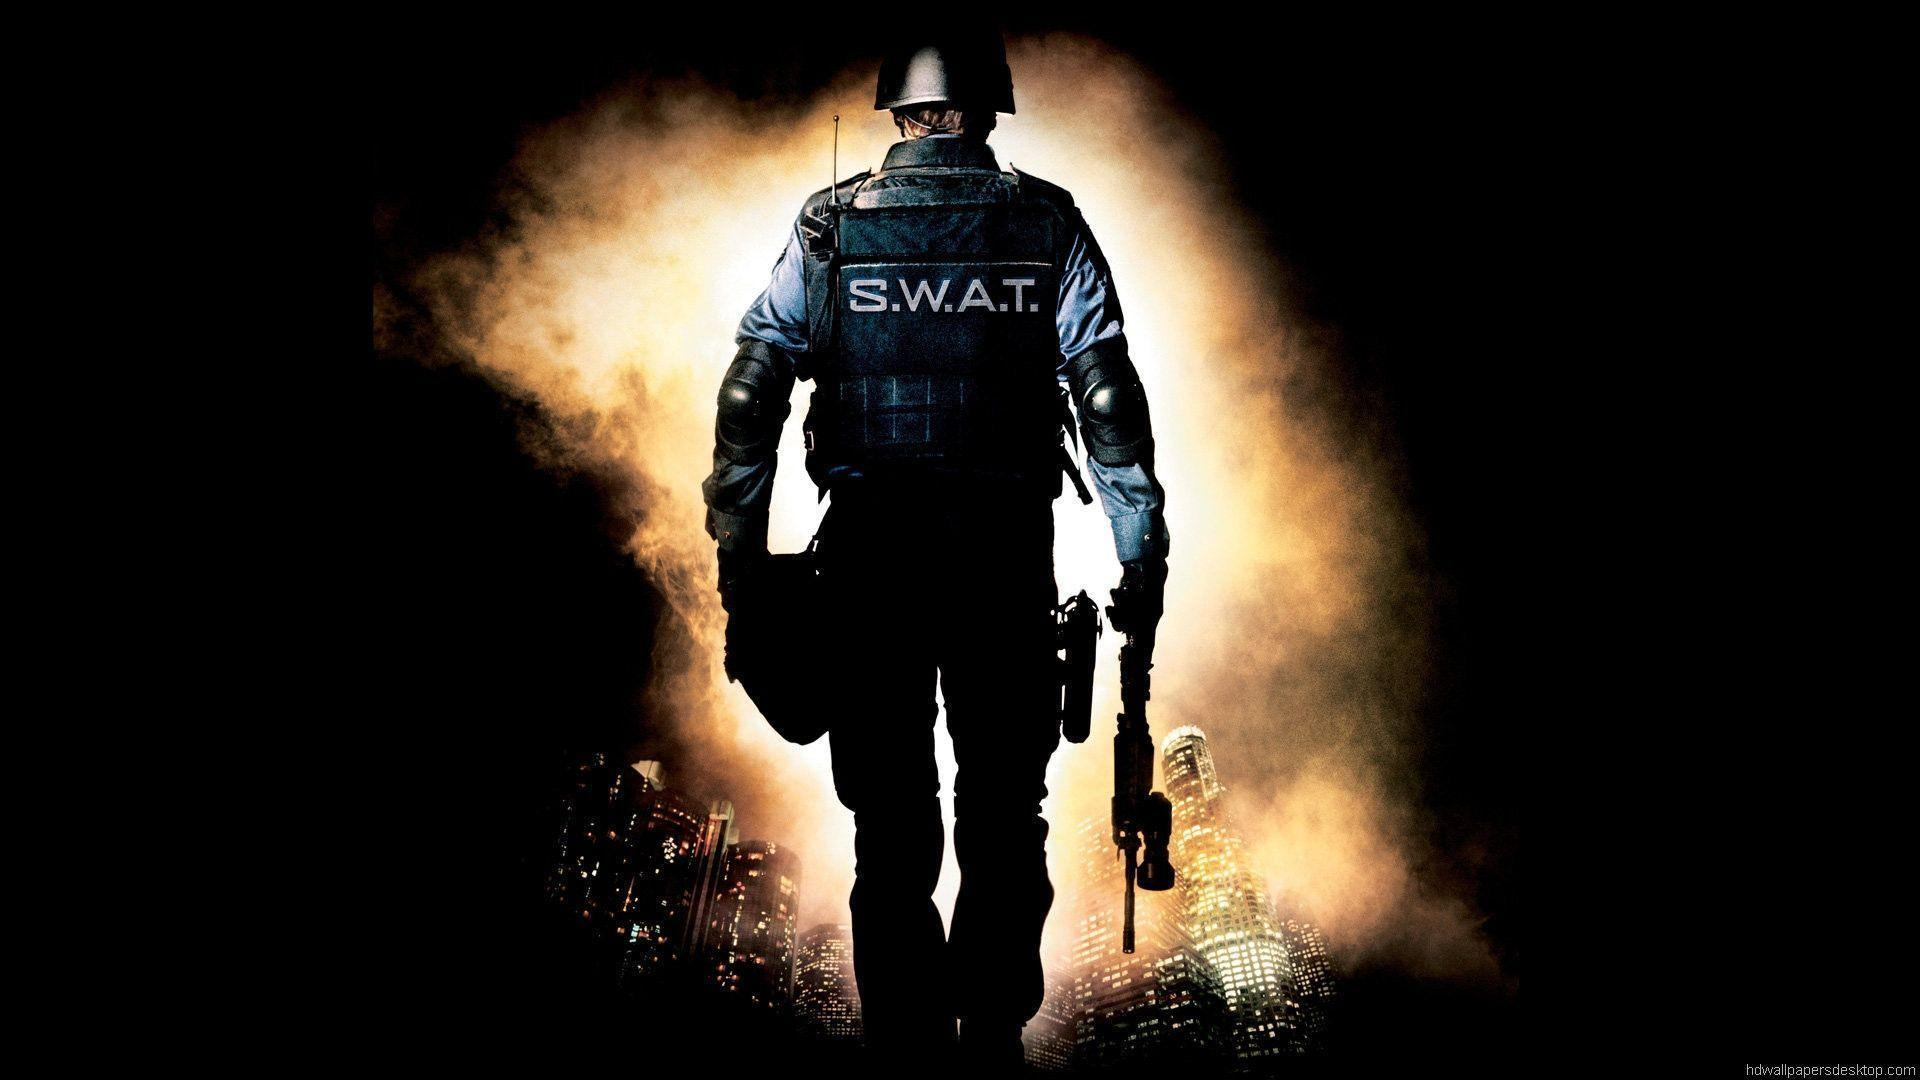 Swat Team Wallpapers - Wallpaper Cave